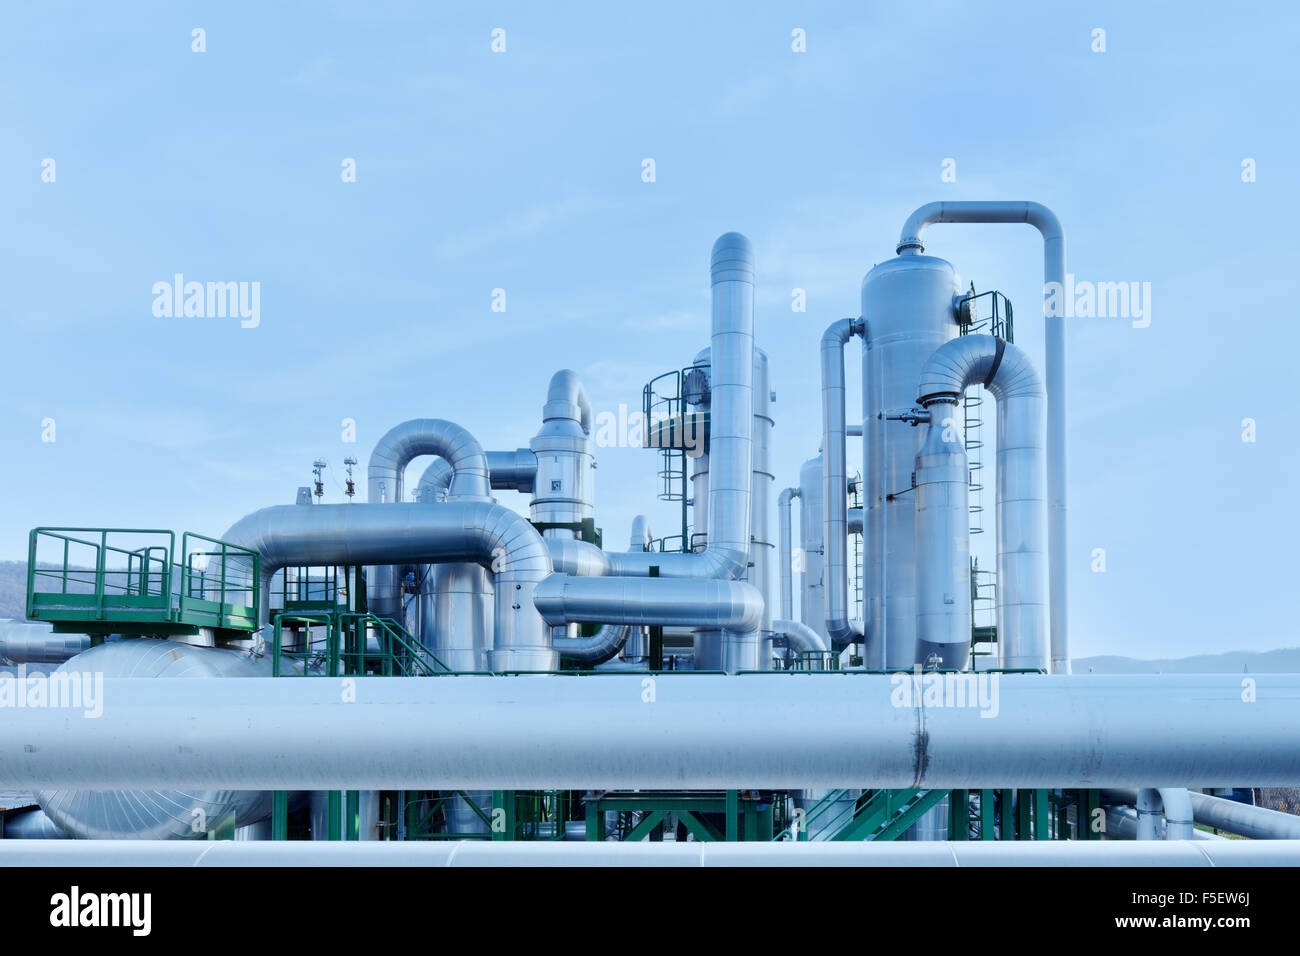 Geothermal power is a form of alternative and sustainable energy production compared to those that use fossil fuels. - Stock Image